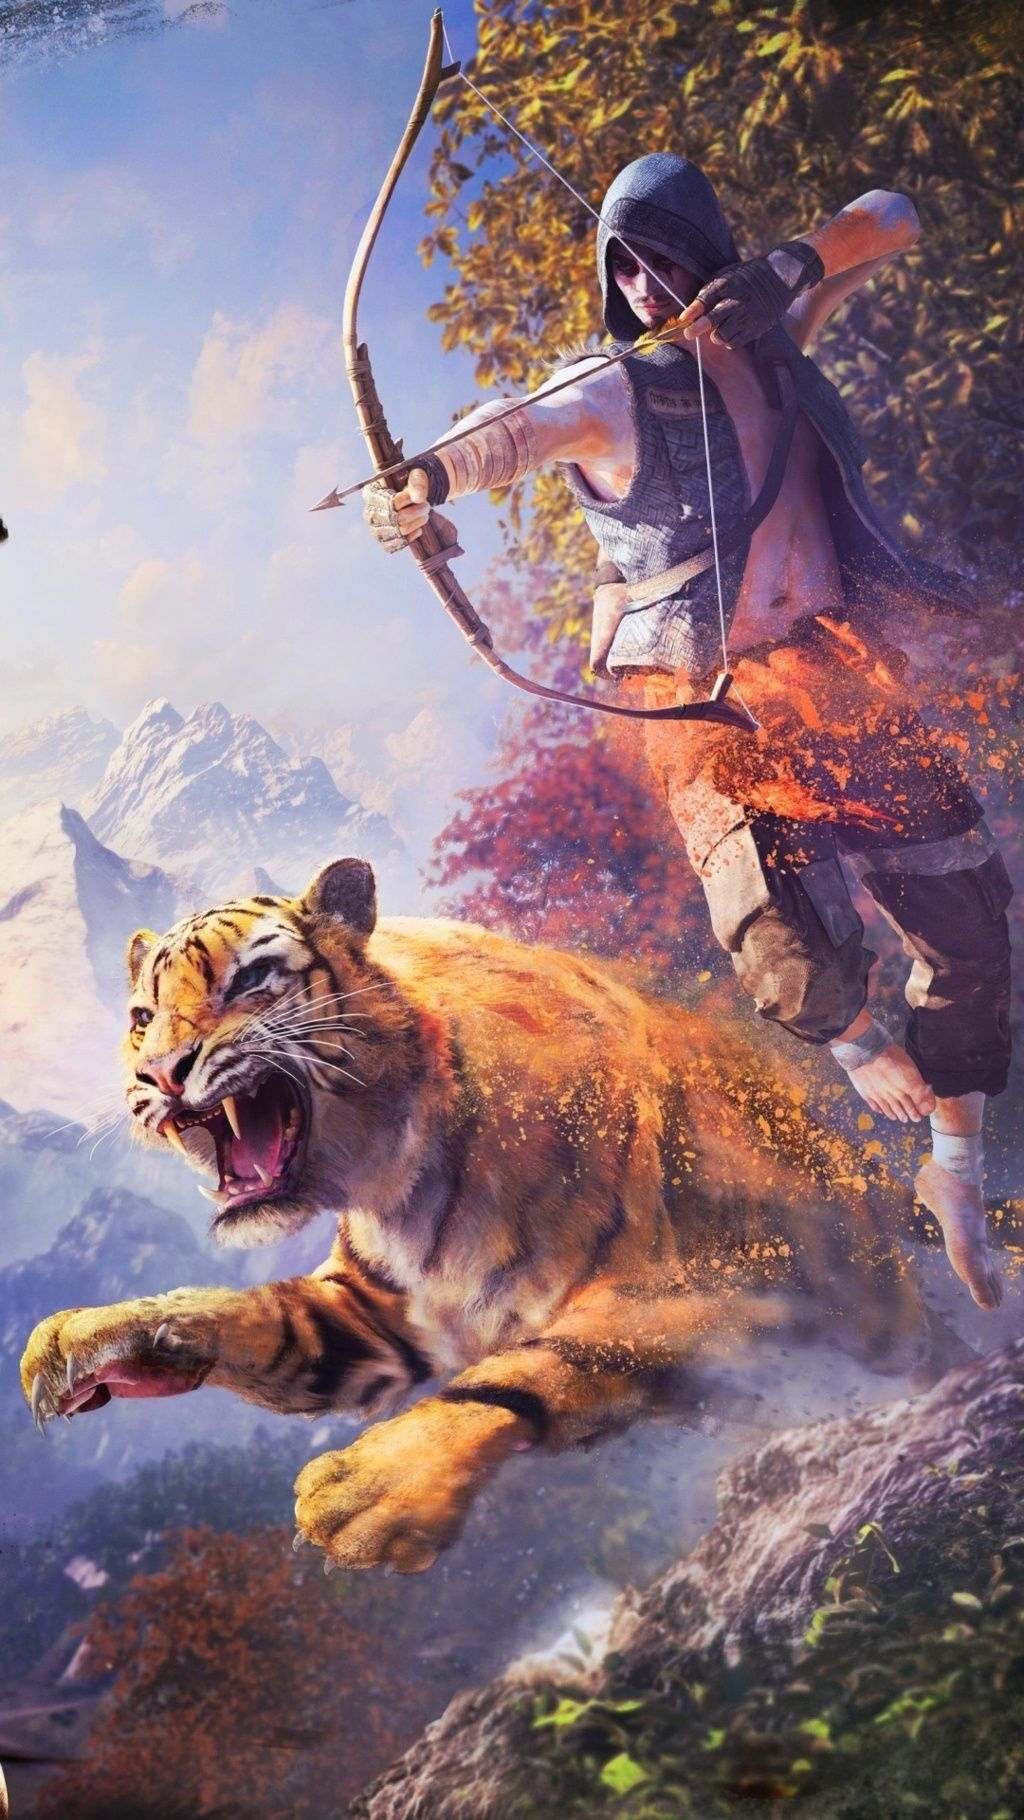 Far Cry 4 Kyrat Hd Wallpaper Hd Wallpapers Quality Hd Desktop Wallpapers Far Cry 4 Far Cry Primal Far Cry Game